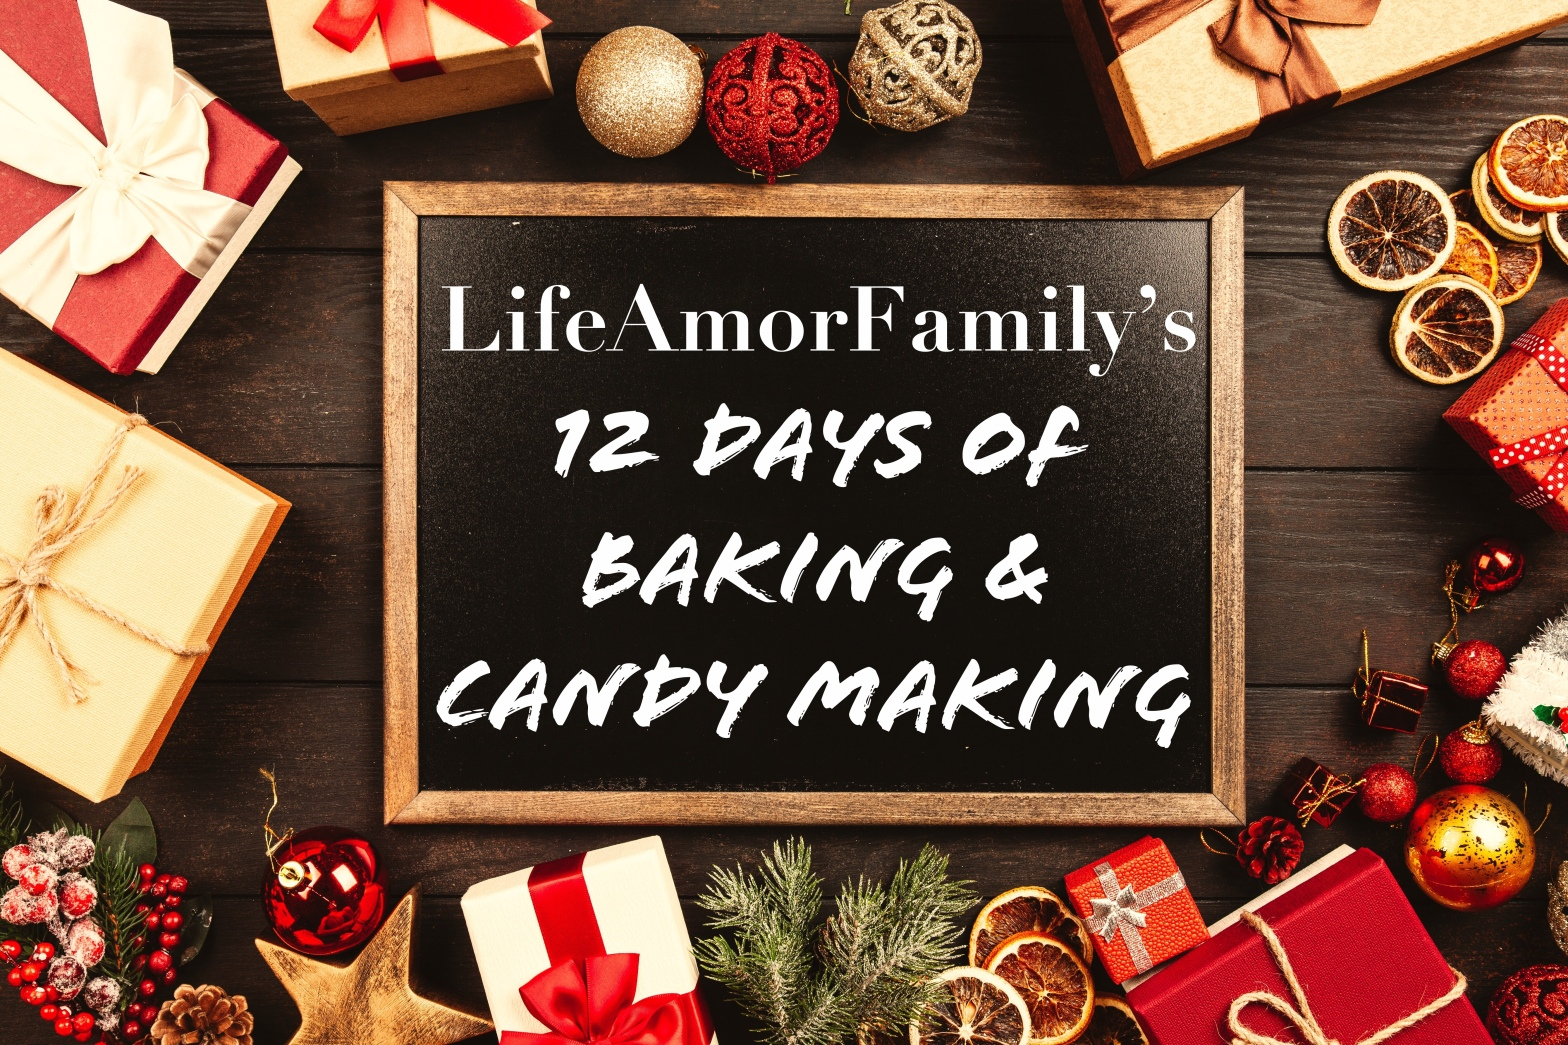 Life Amor Family's 12 Days of Baking and Candy Making